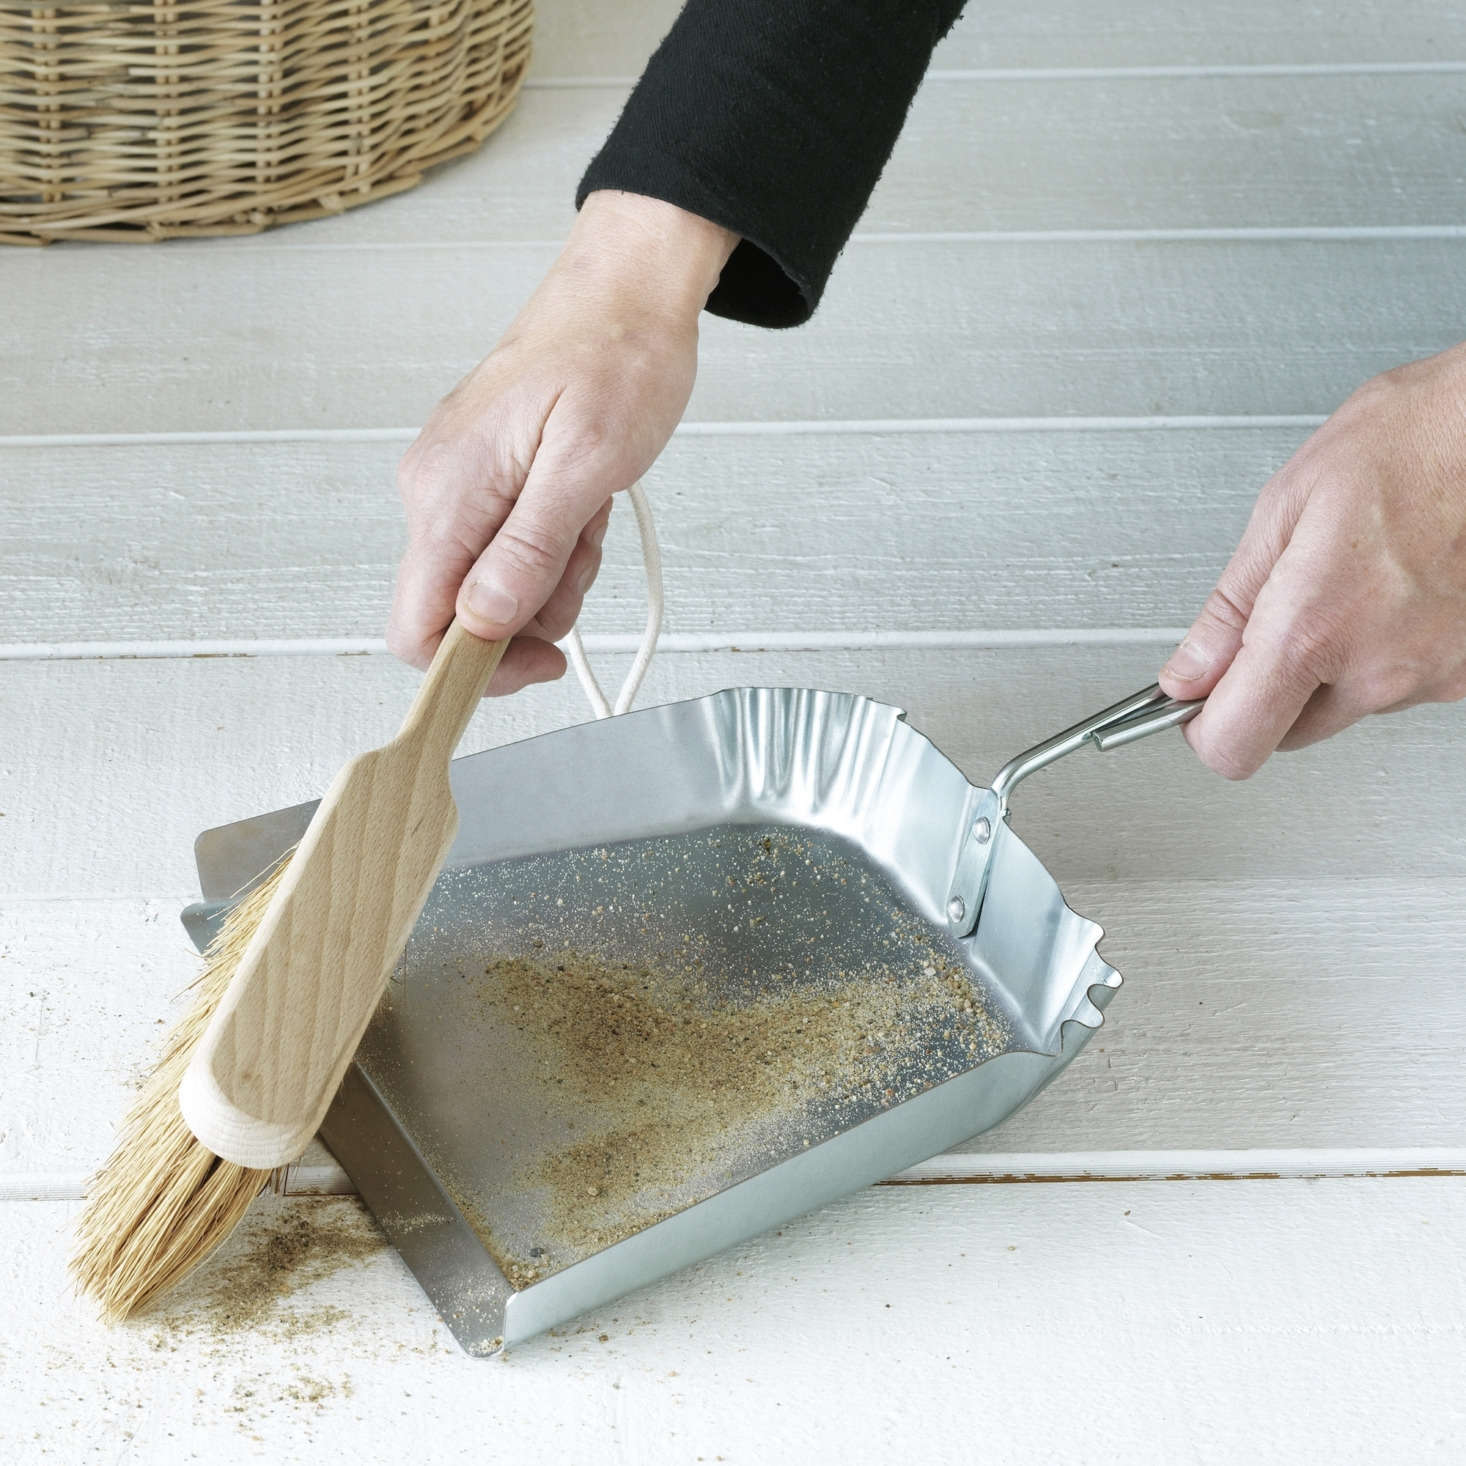 The galvanized stainless steel Dust Pan and Brush are sold together for $src=